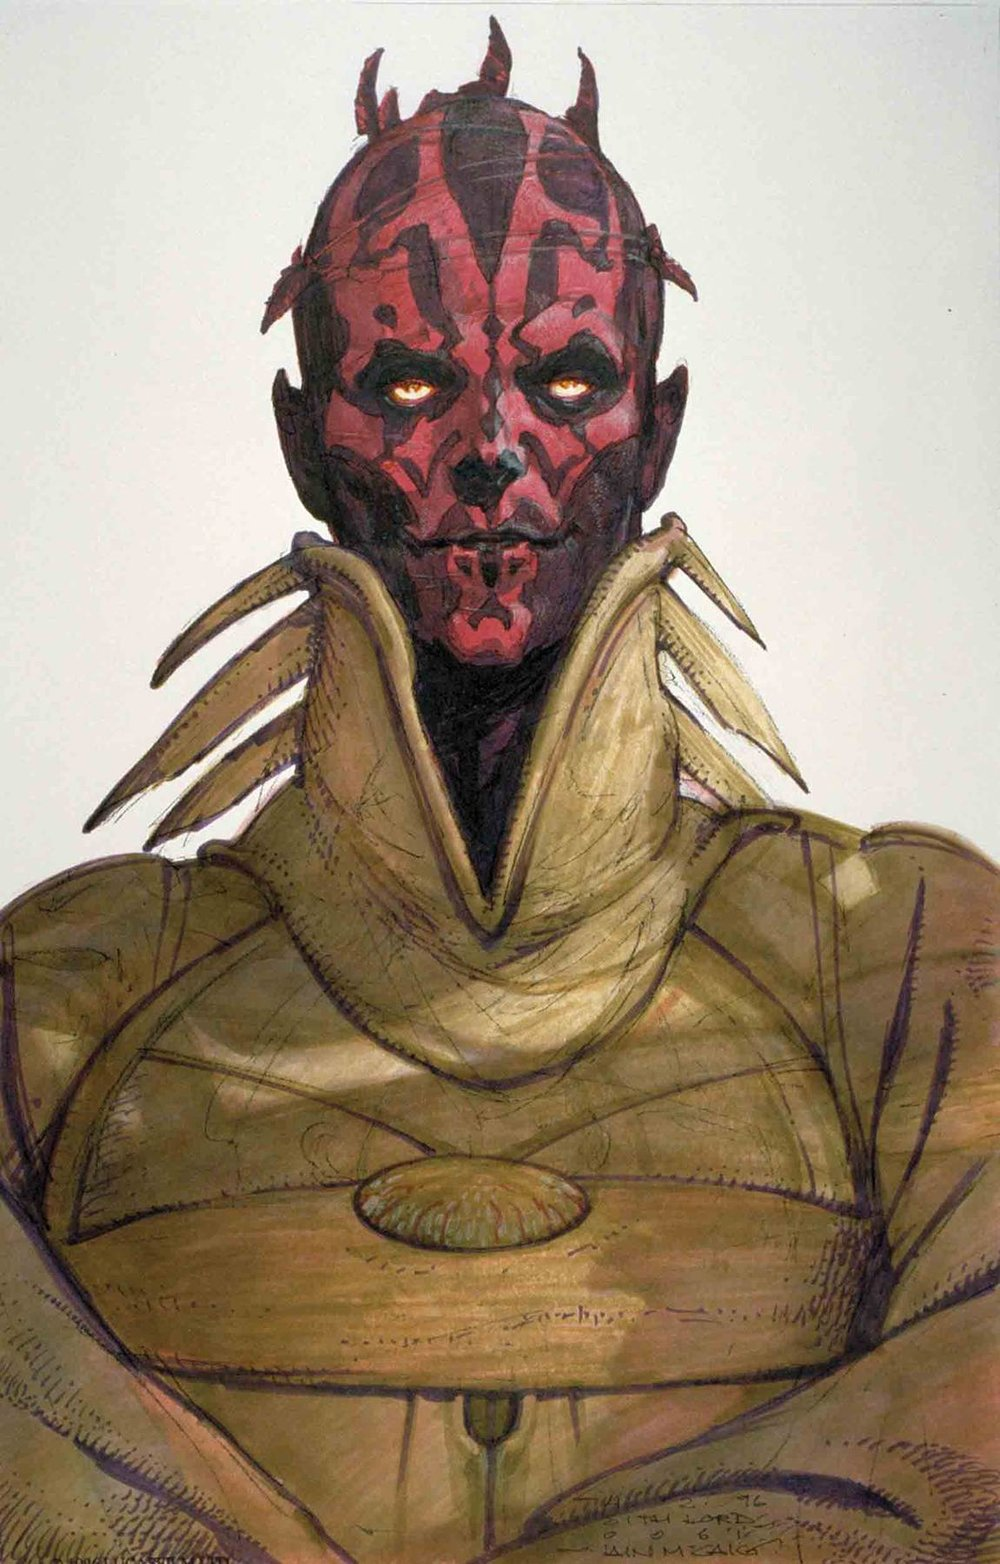 STAR WARS AGE REPUBLIC DARTH MAUL 1 MCCAIG DESIGN VAR.jpg